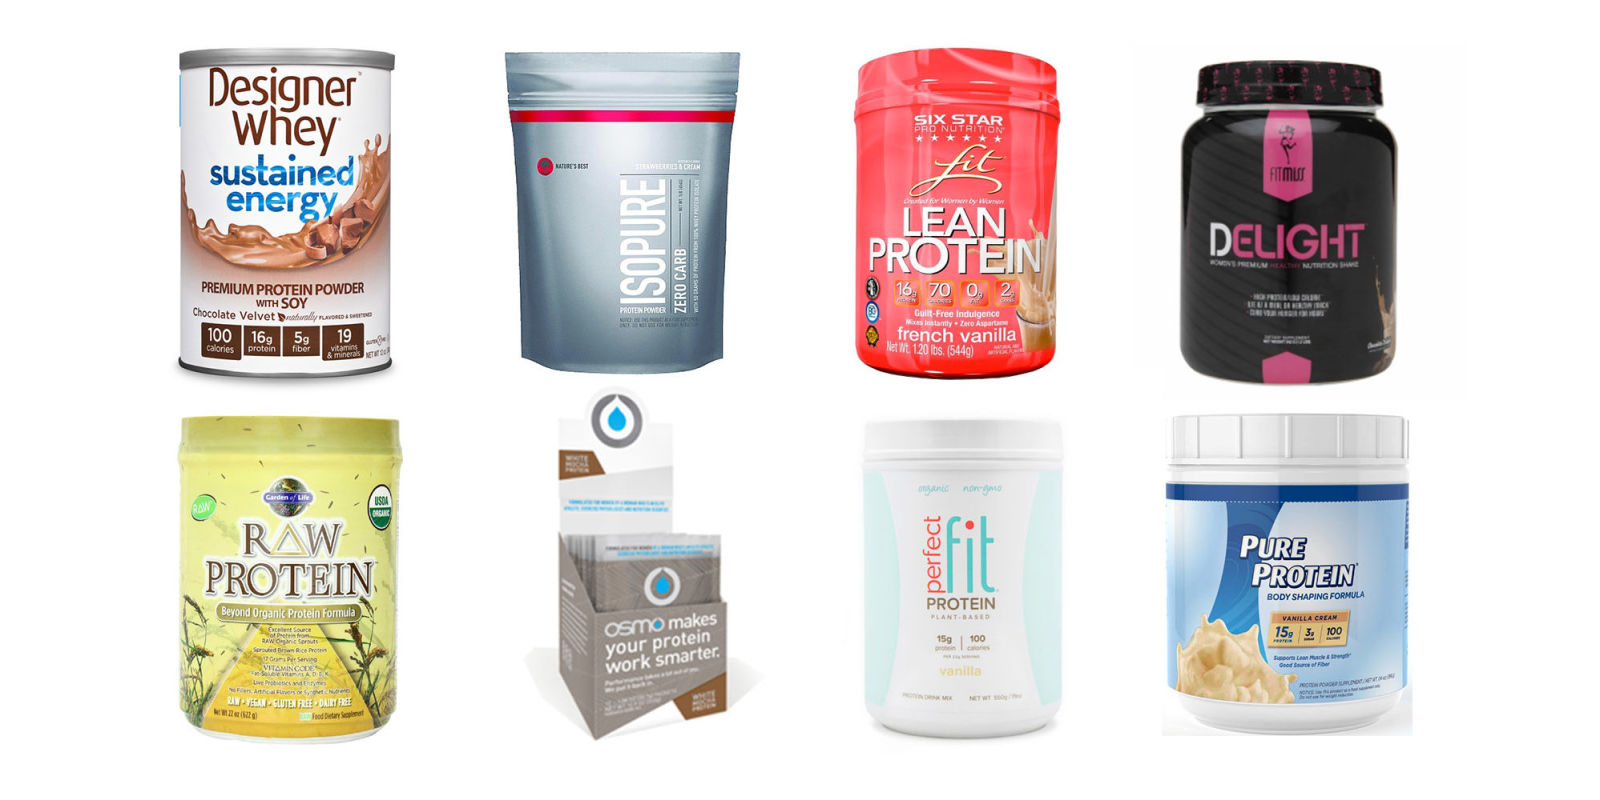 Proteine Poeder 10 Best Protein Powders For Women In 2016 Whey And Soy